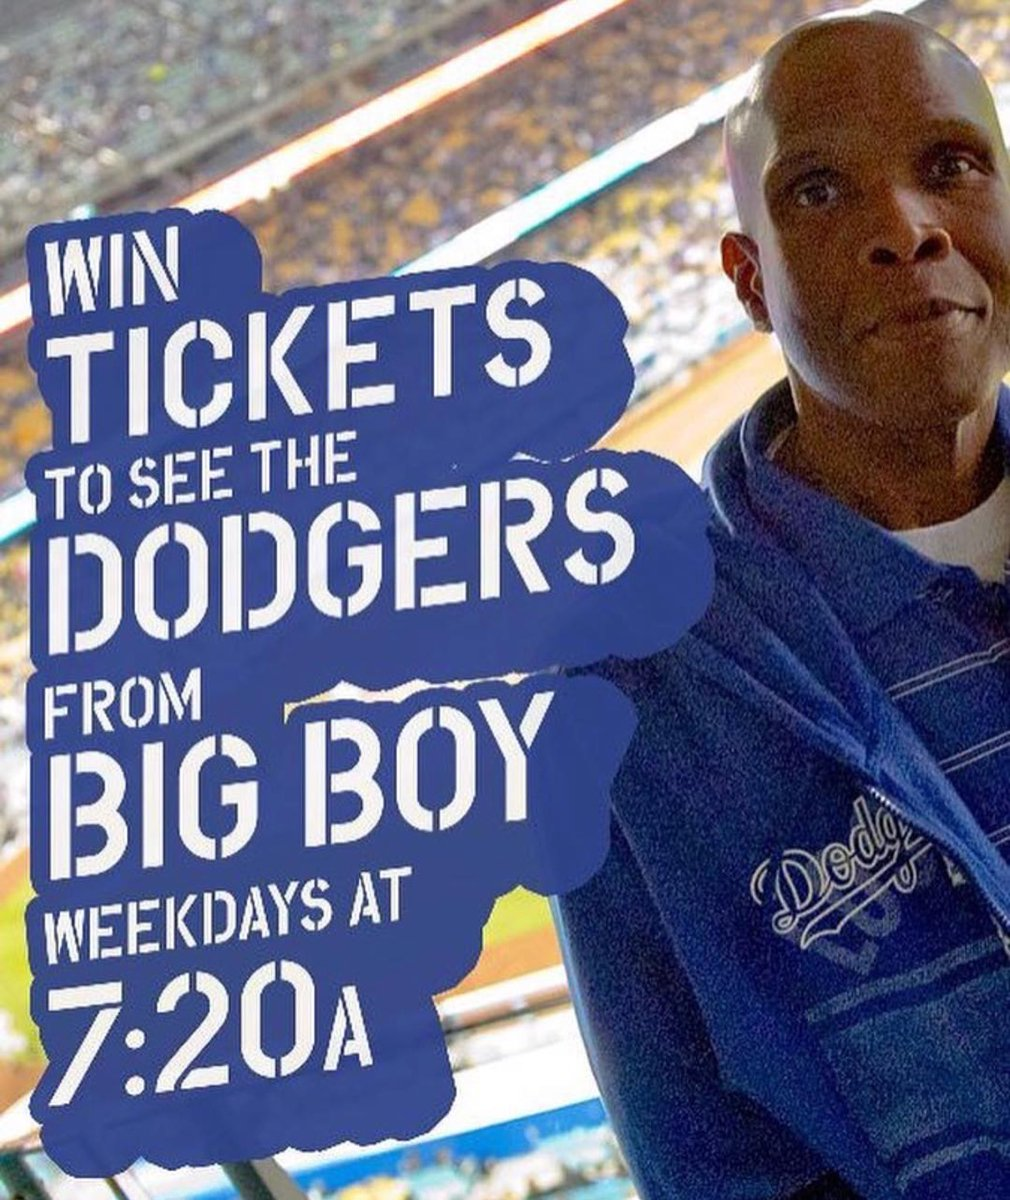 Tag a #Dodgers fan, we're giving away tickets all week long! #BigBoy